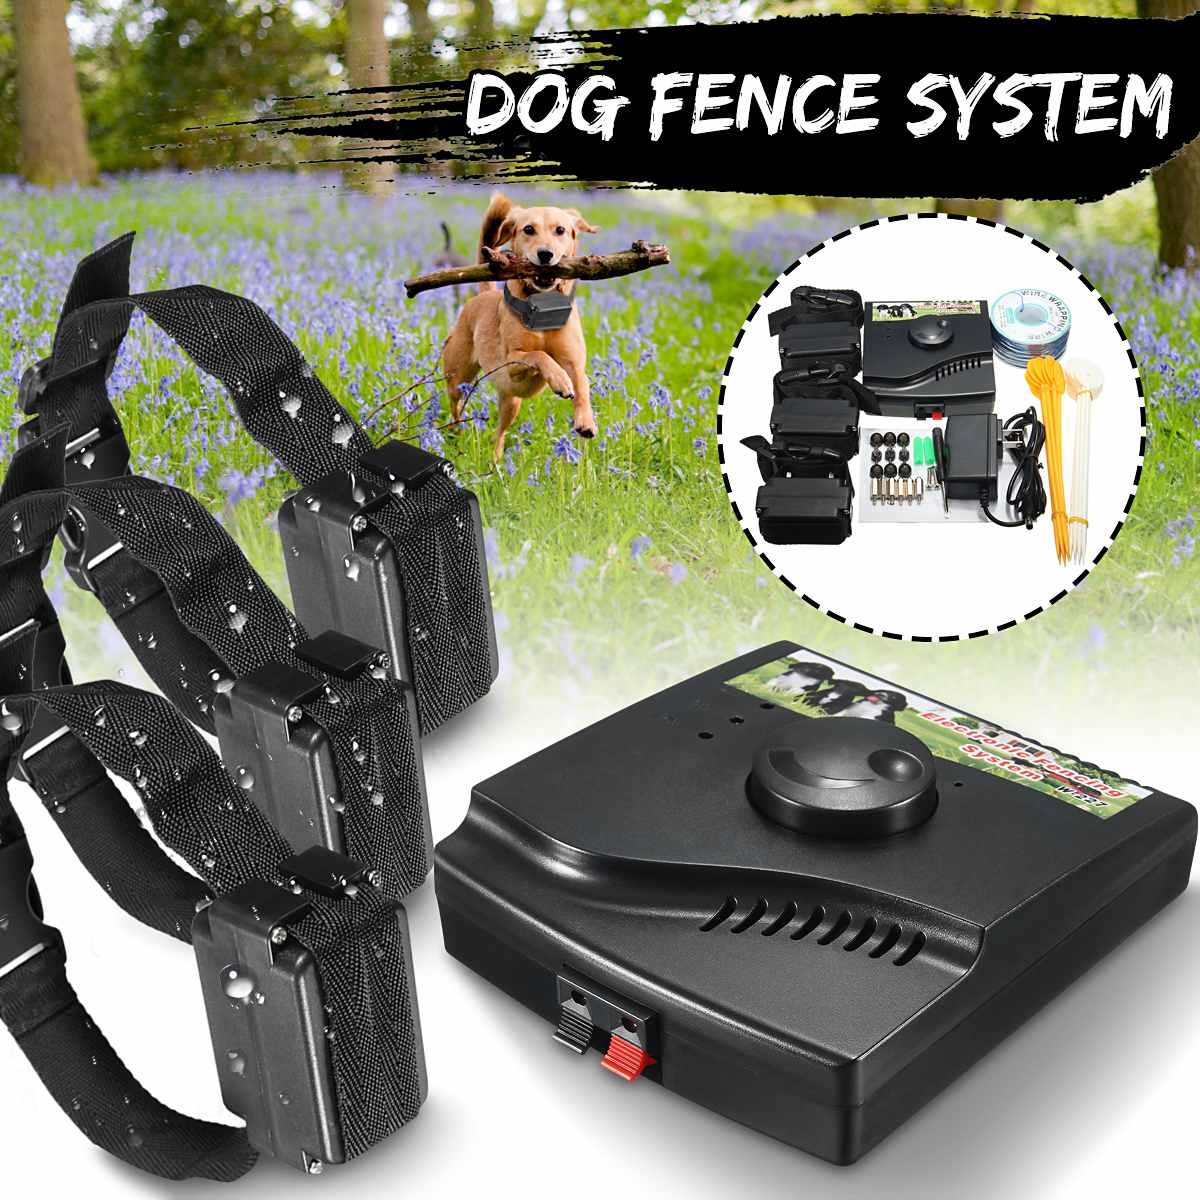 Safety Pet Dog Electric Fence With Waterproof Dog Electronic Training Collar Electric Dog Fence Containment System CatSafety Pet Dog Electric Fence With Waterproof Dog Electronic Training Collar Electric Dog Fence Containment System Cat